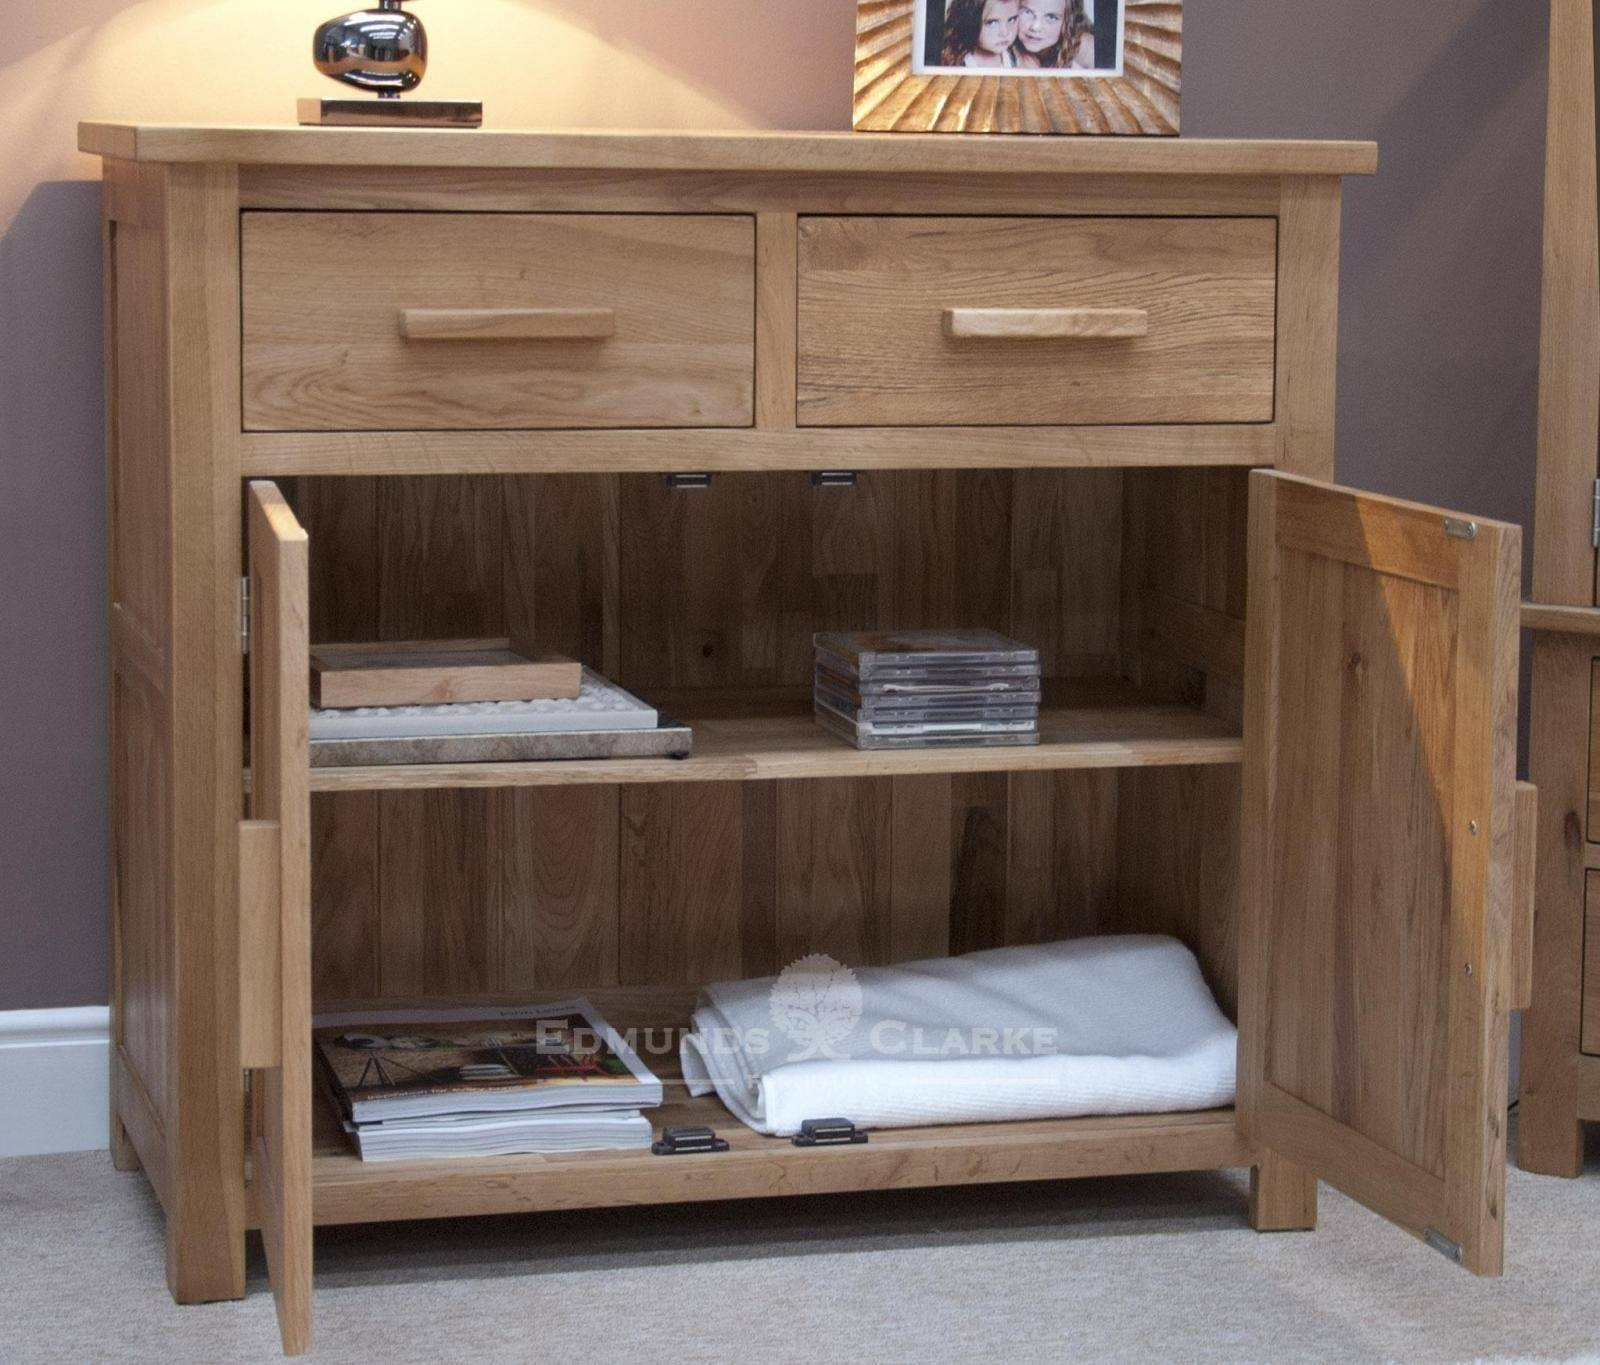 Small Sideboard - Oak Sideboards For The Kitchen, Dining Room Or inside Lounge Sideboards (Image 14 of 15)